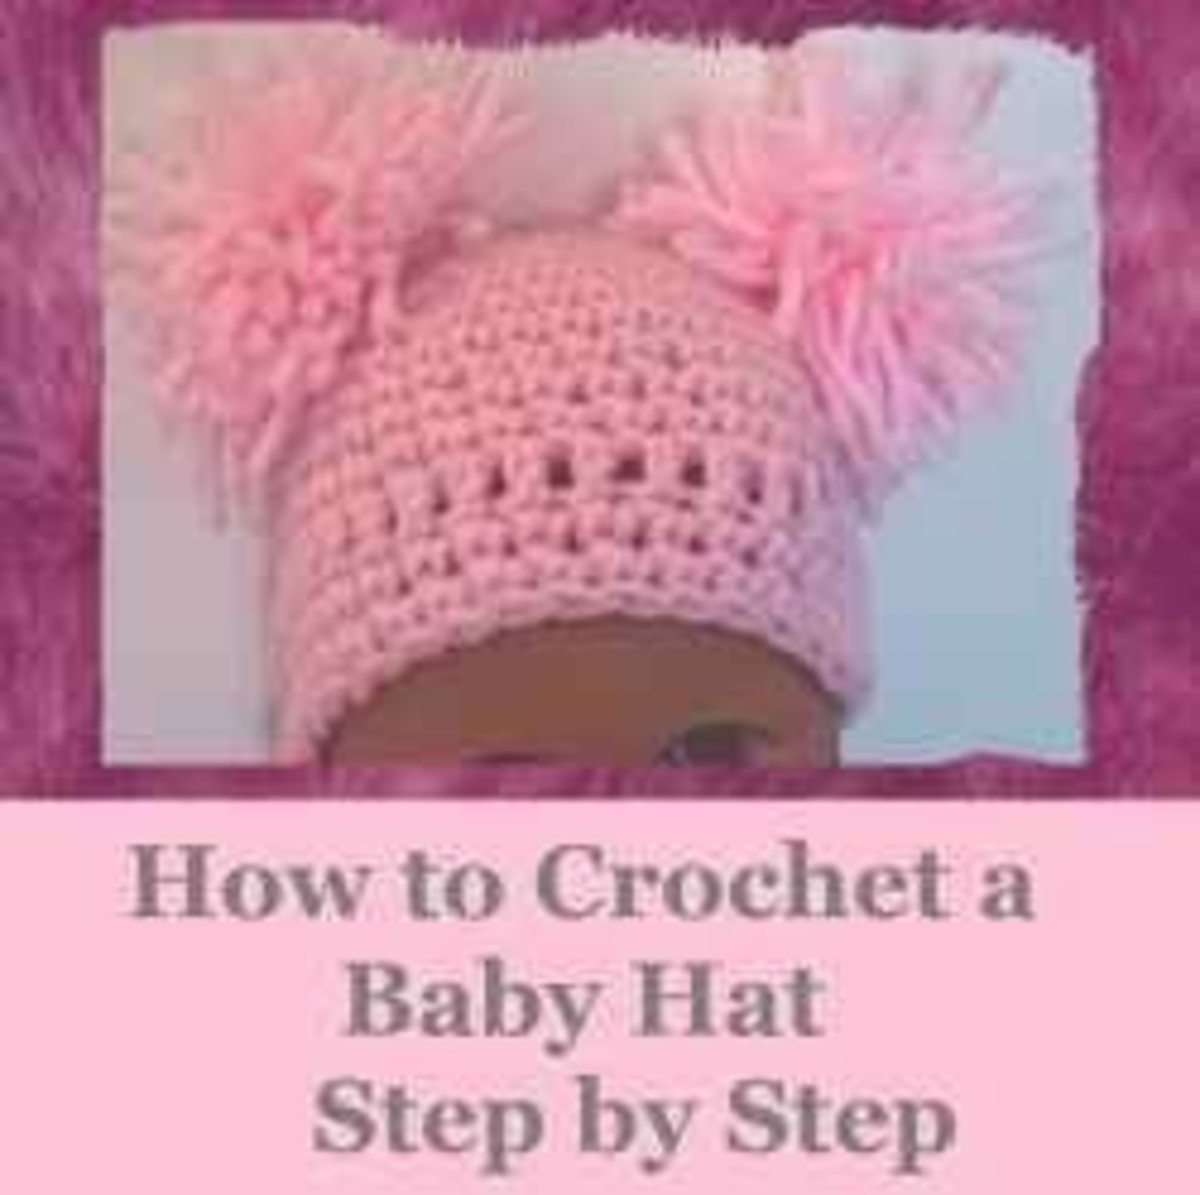 How to crochet a baby hat step by step with this free pattern